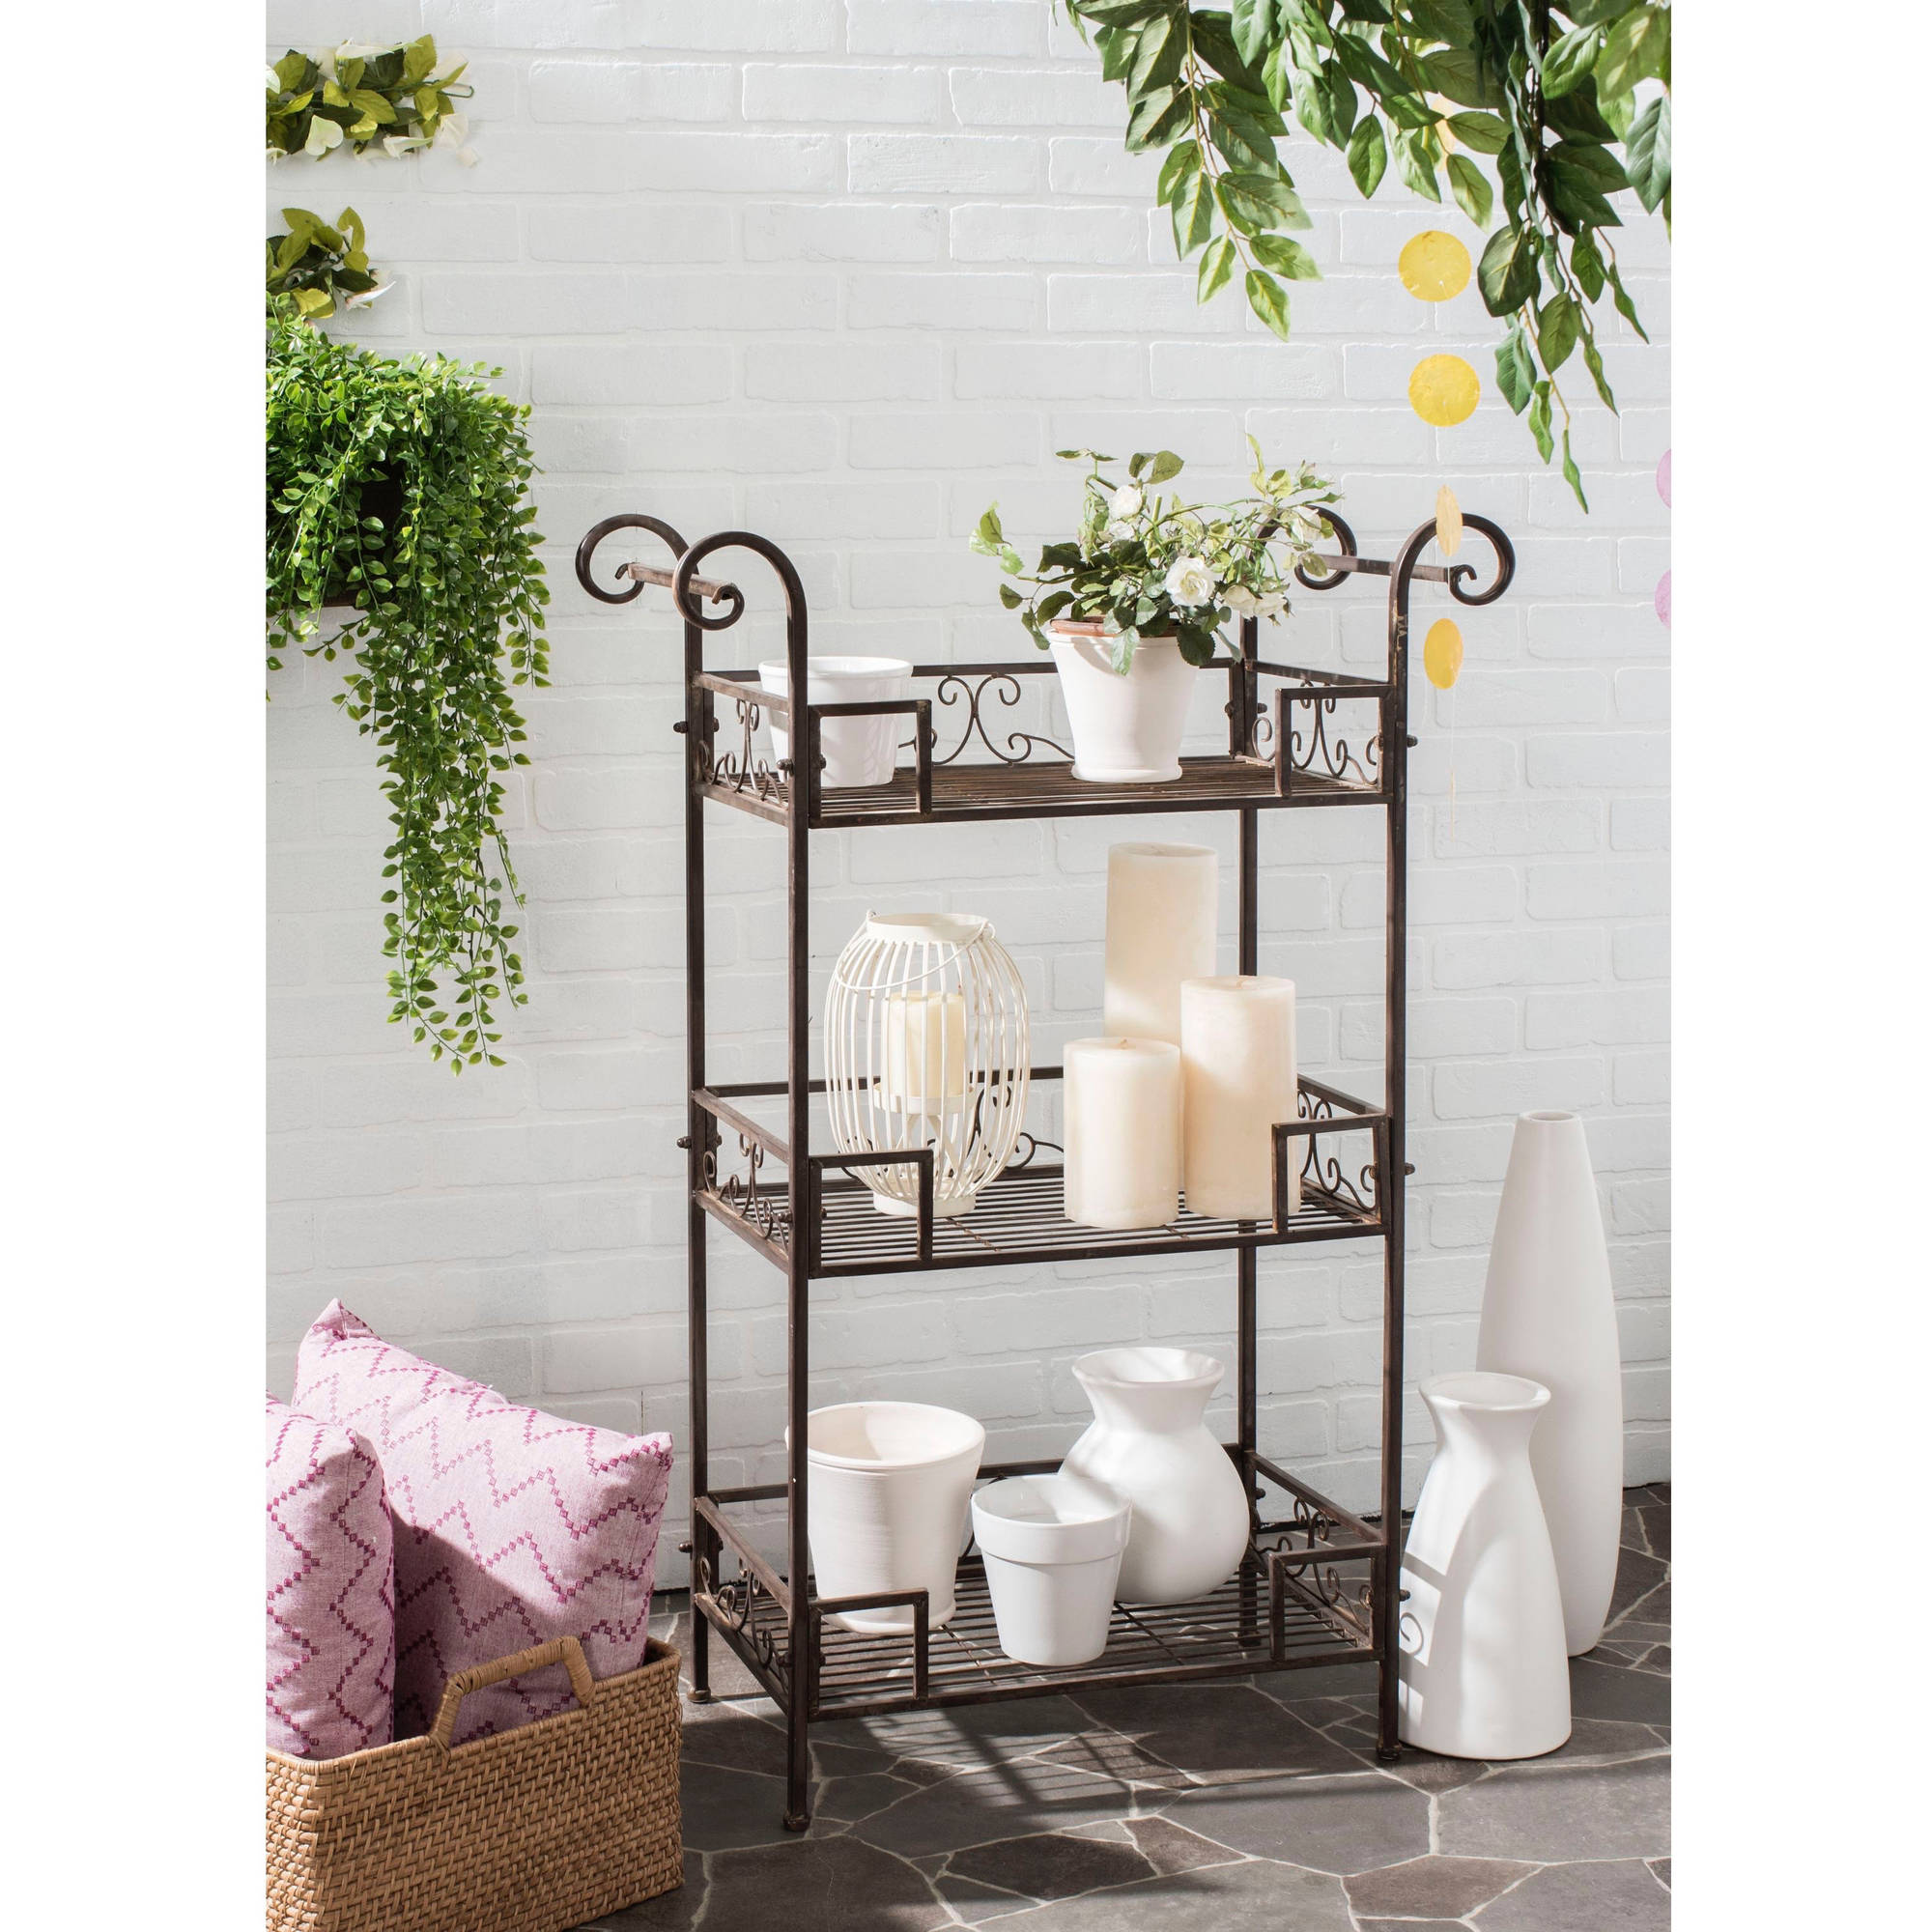 Safavieh Noreen 3-Tier Outdoor Shelf